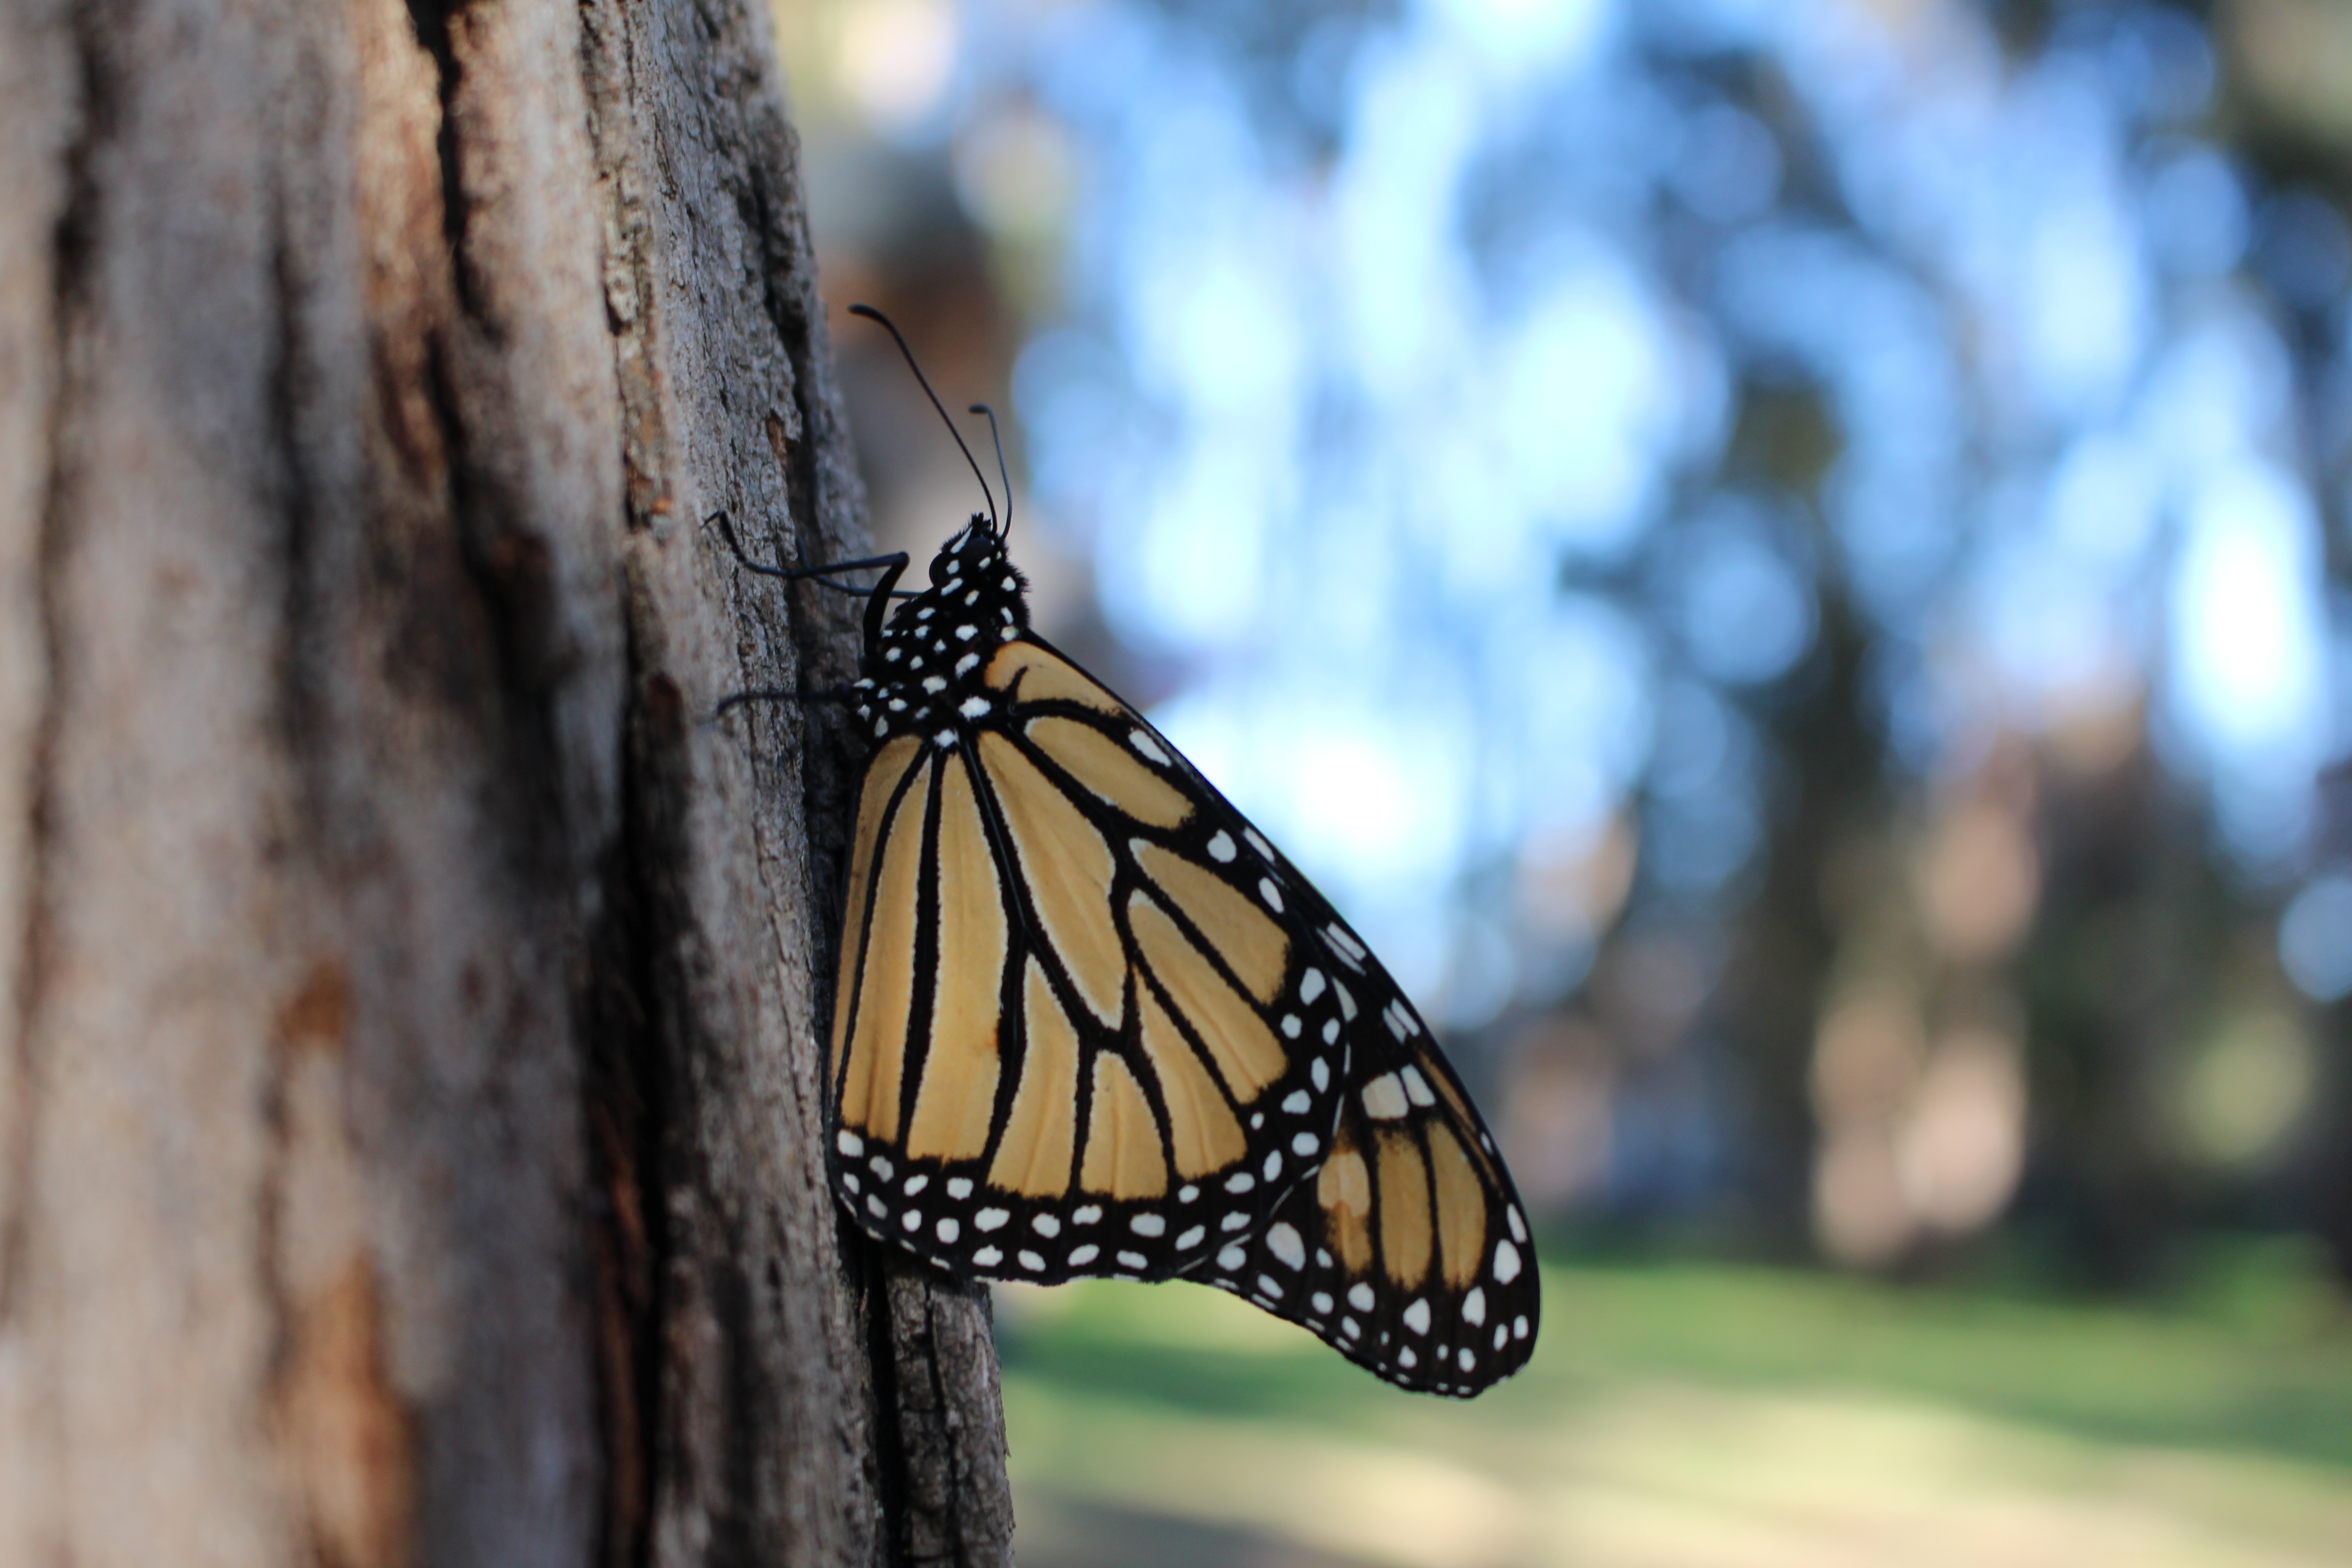 A monarch with folded wings perches on a tree trunk. The photo's colors are subdued, creating a slightly gloomy mood.